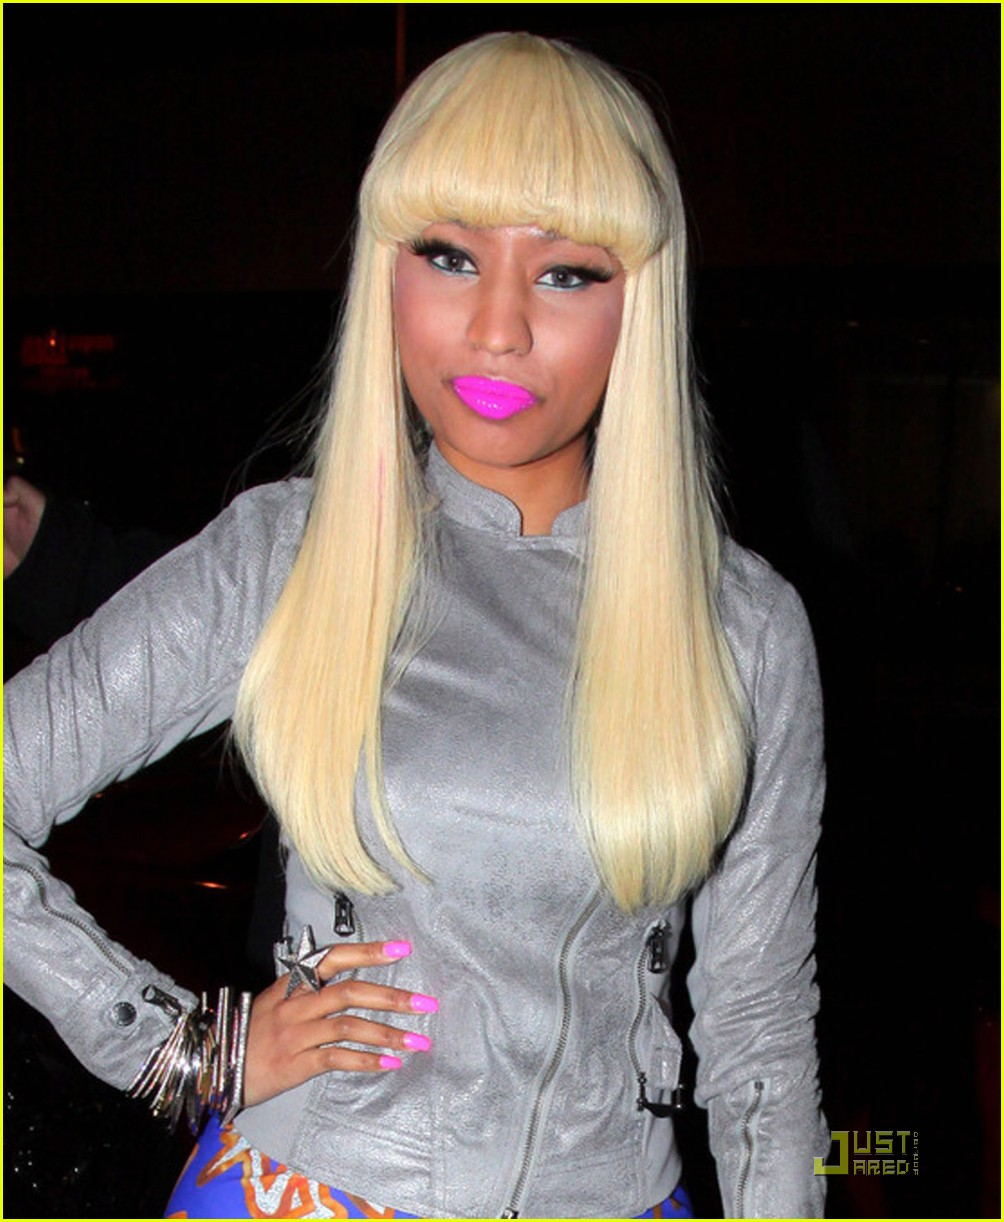 A New Life Hartz Curly Wedding Hairstyle: A New Life Hartz: Nicki Minaj Super Bass Hairstyles Pictures